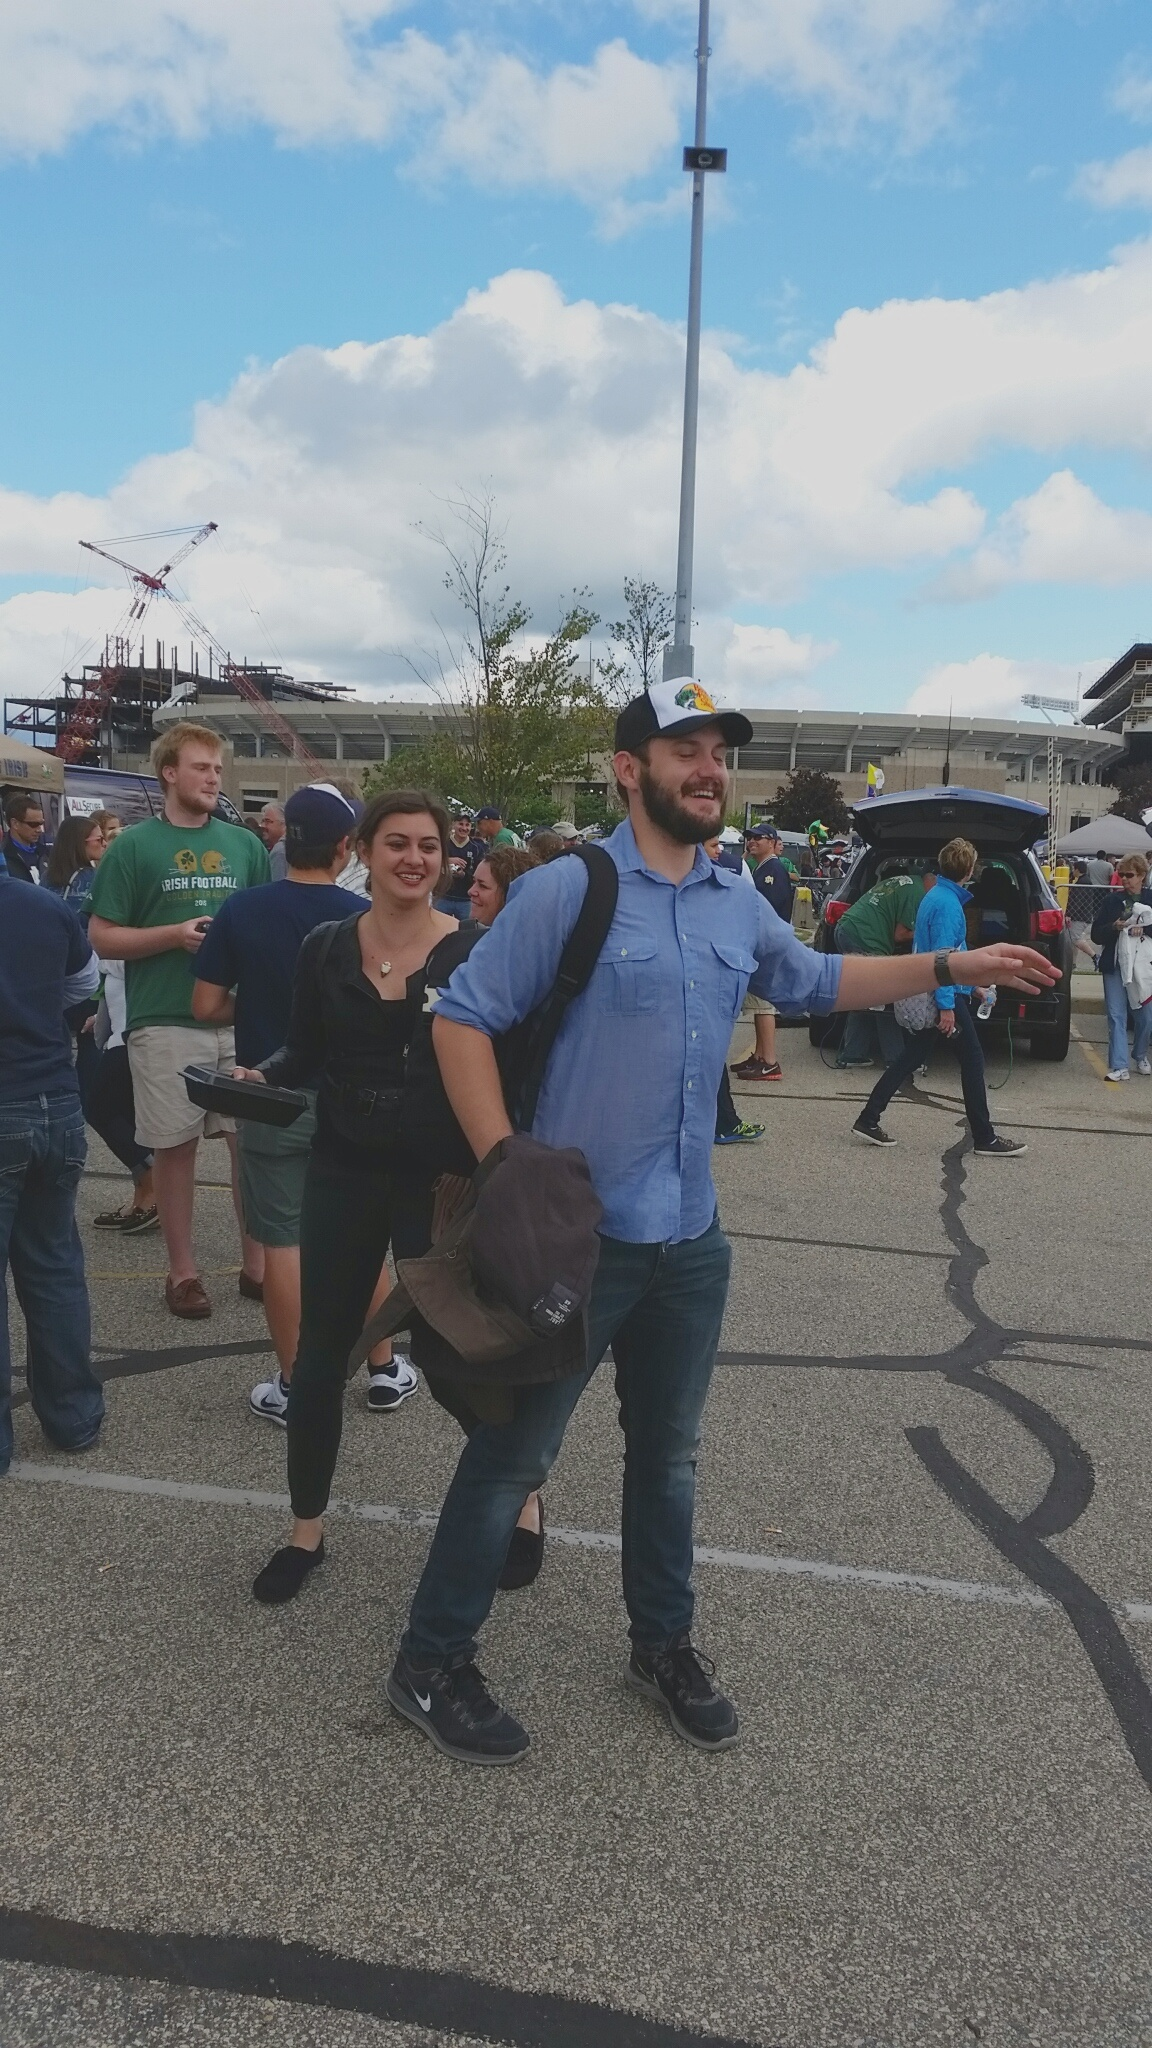 Jason's first time tailgating (at an ND game at that)